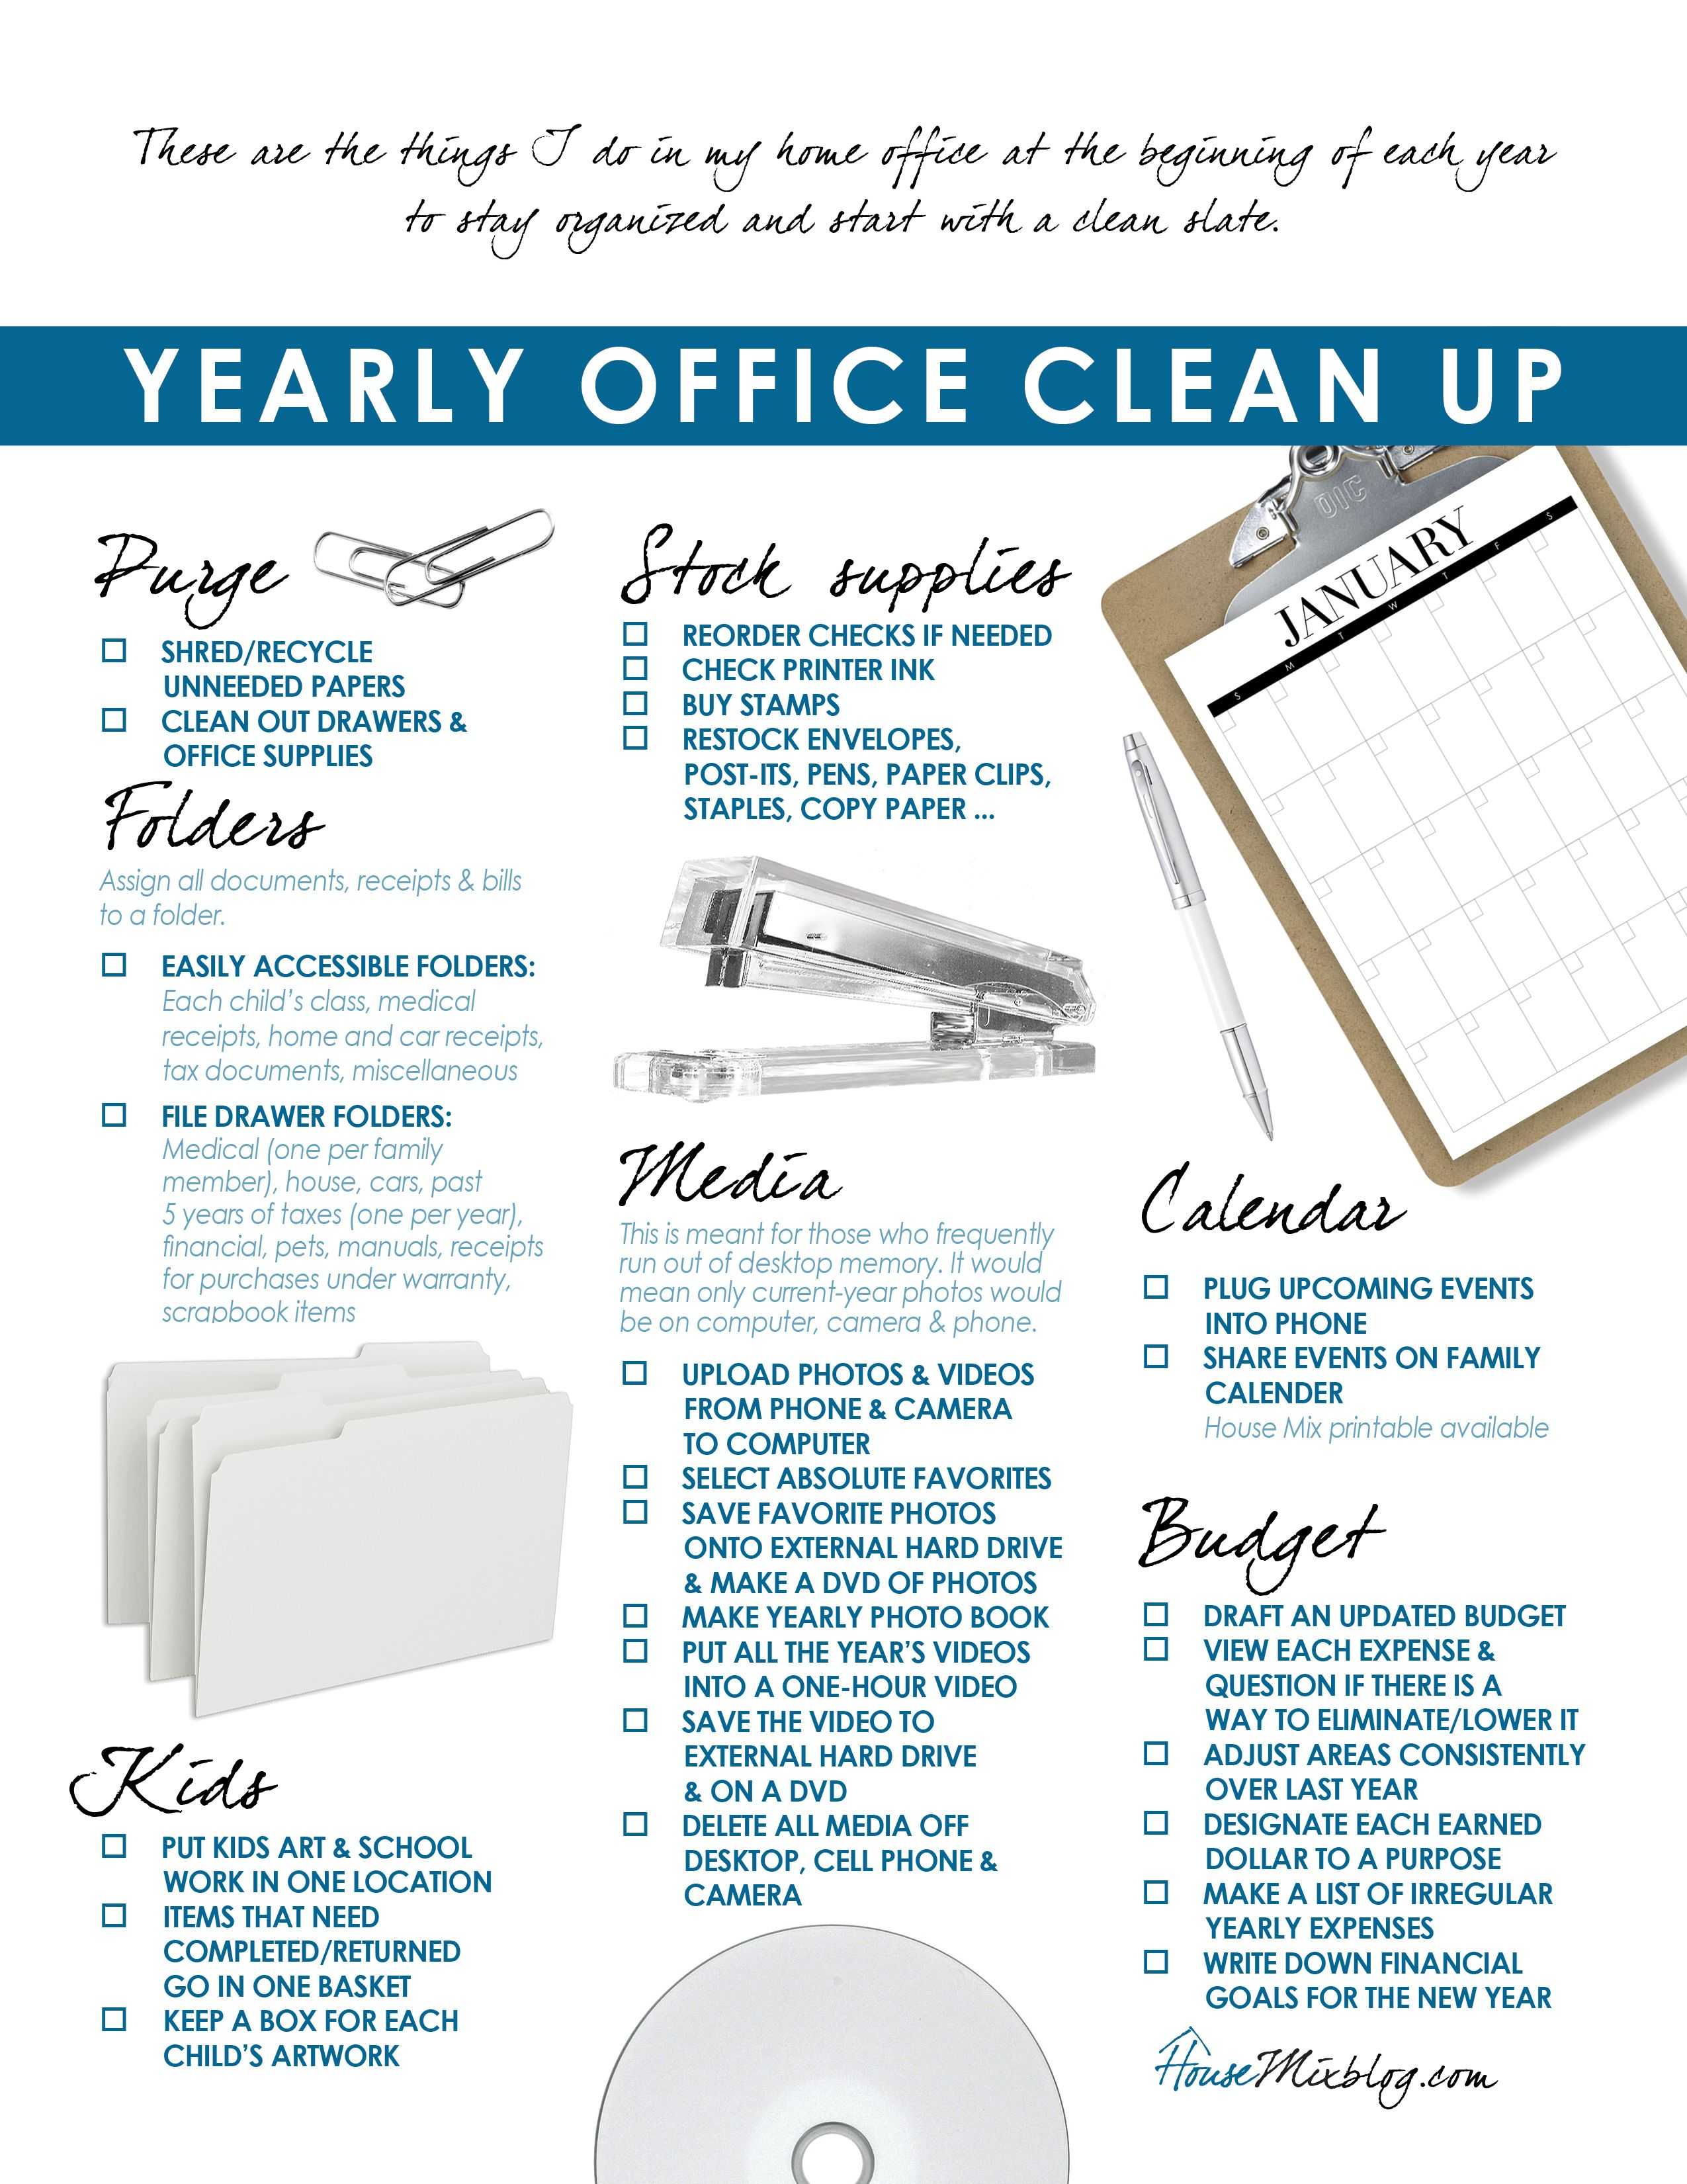 Organize your home office Checklist Printable Checklist For Home Office Organization Organize Finances Office Space Computer Calendar And School Papers In Order For Clean Slate In The Pinterest Ideas To Organize Your Home Office Budget House Mix Life